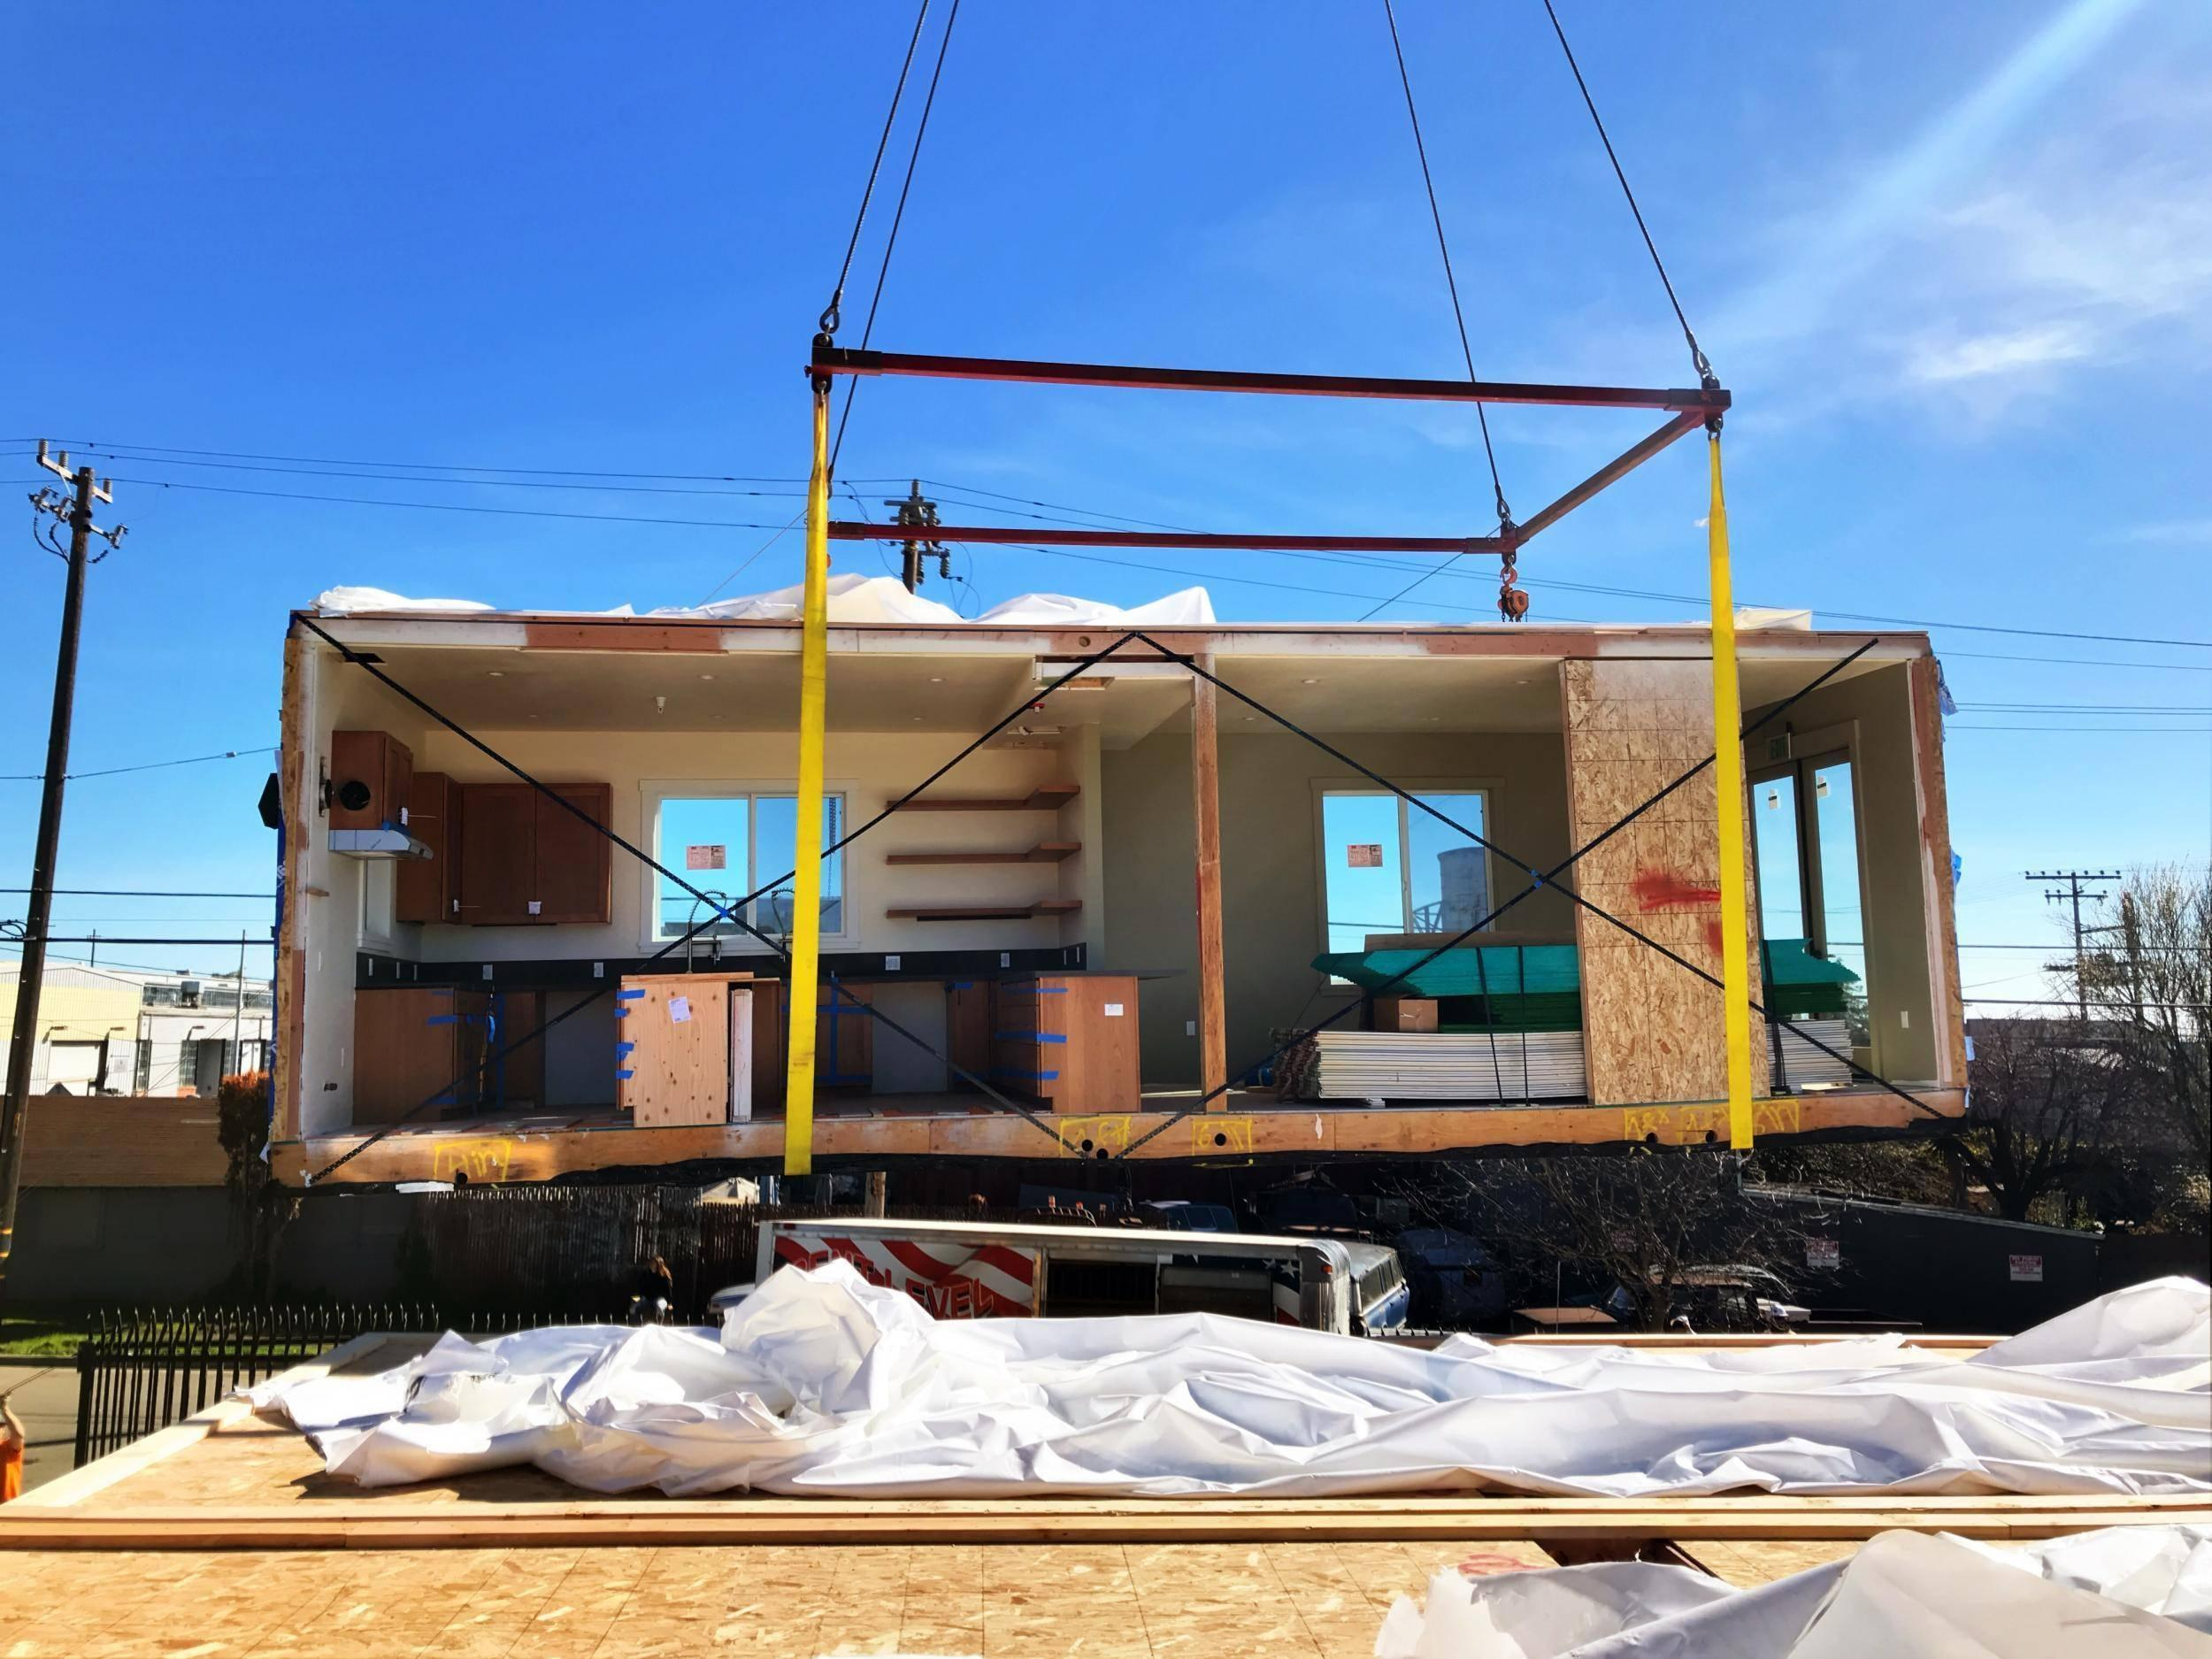 prefab housing - latest news, breaking stories and comment